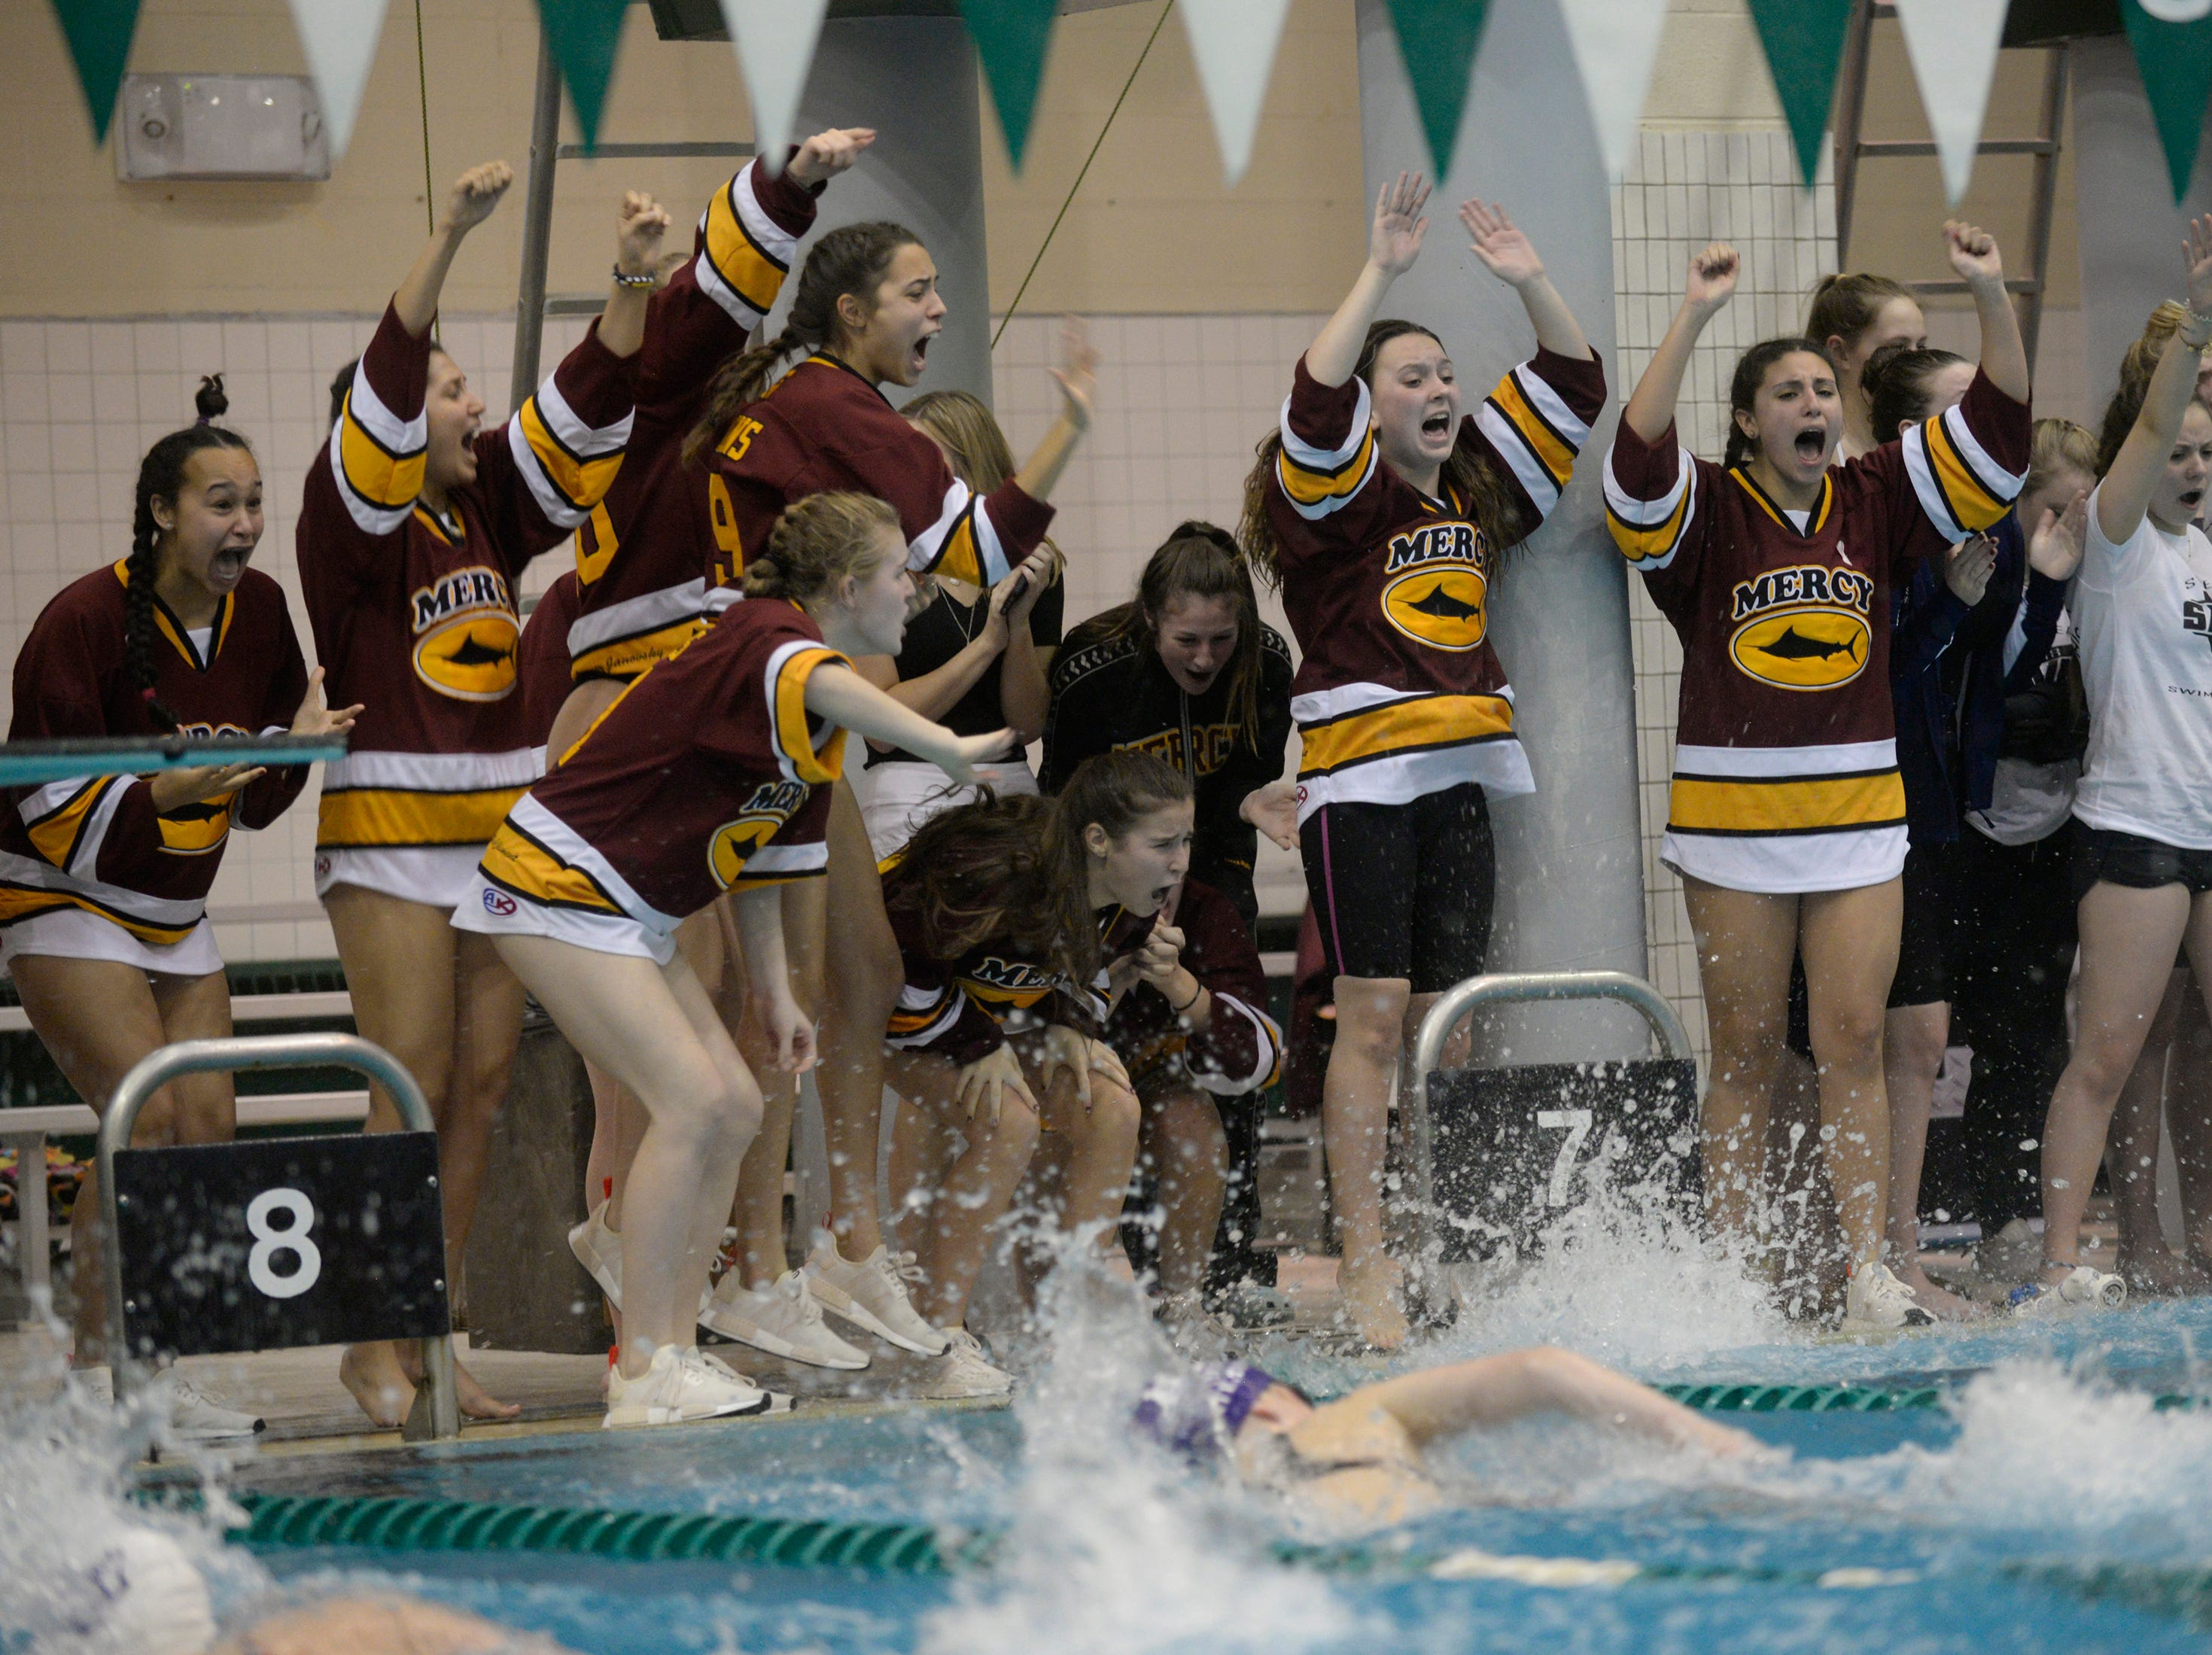 Mercy swimmers cheer on the 400 yard relay team at the Division 1 girls swimming and diving championships held at Eastern Michigan University Nov. 17, 2018.